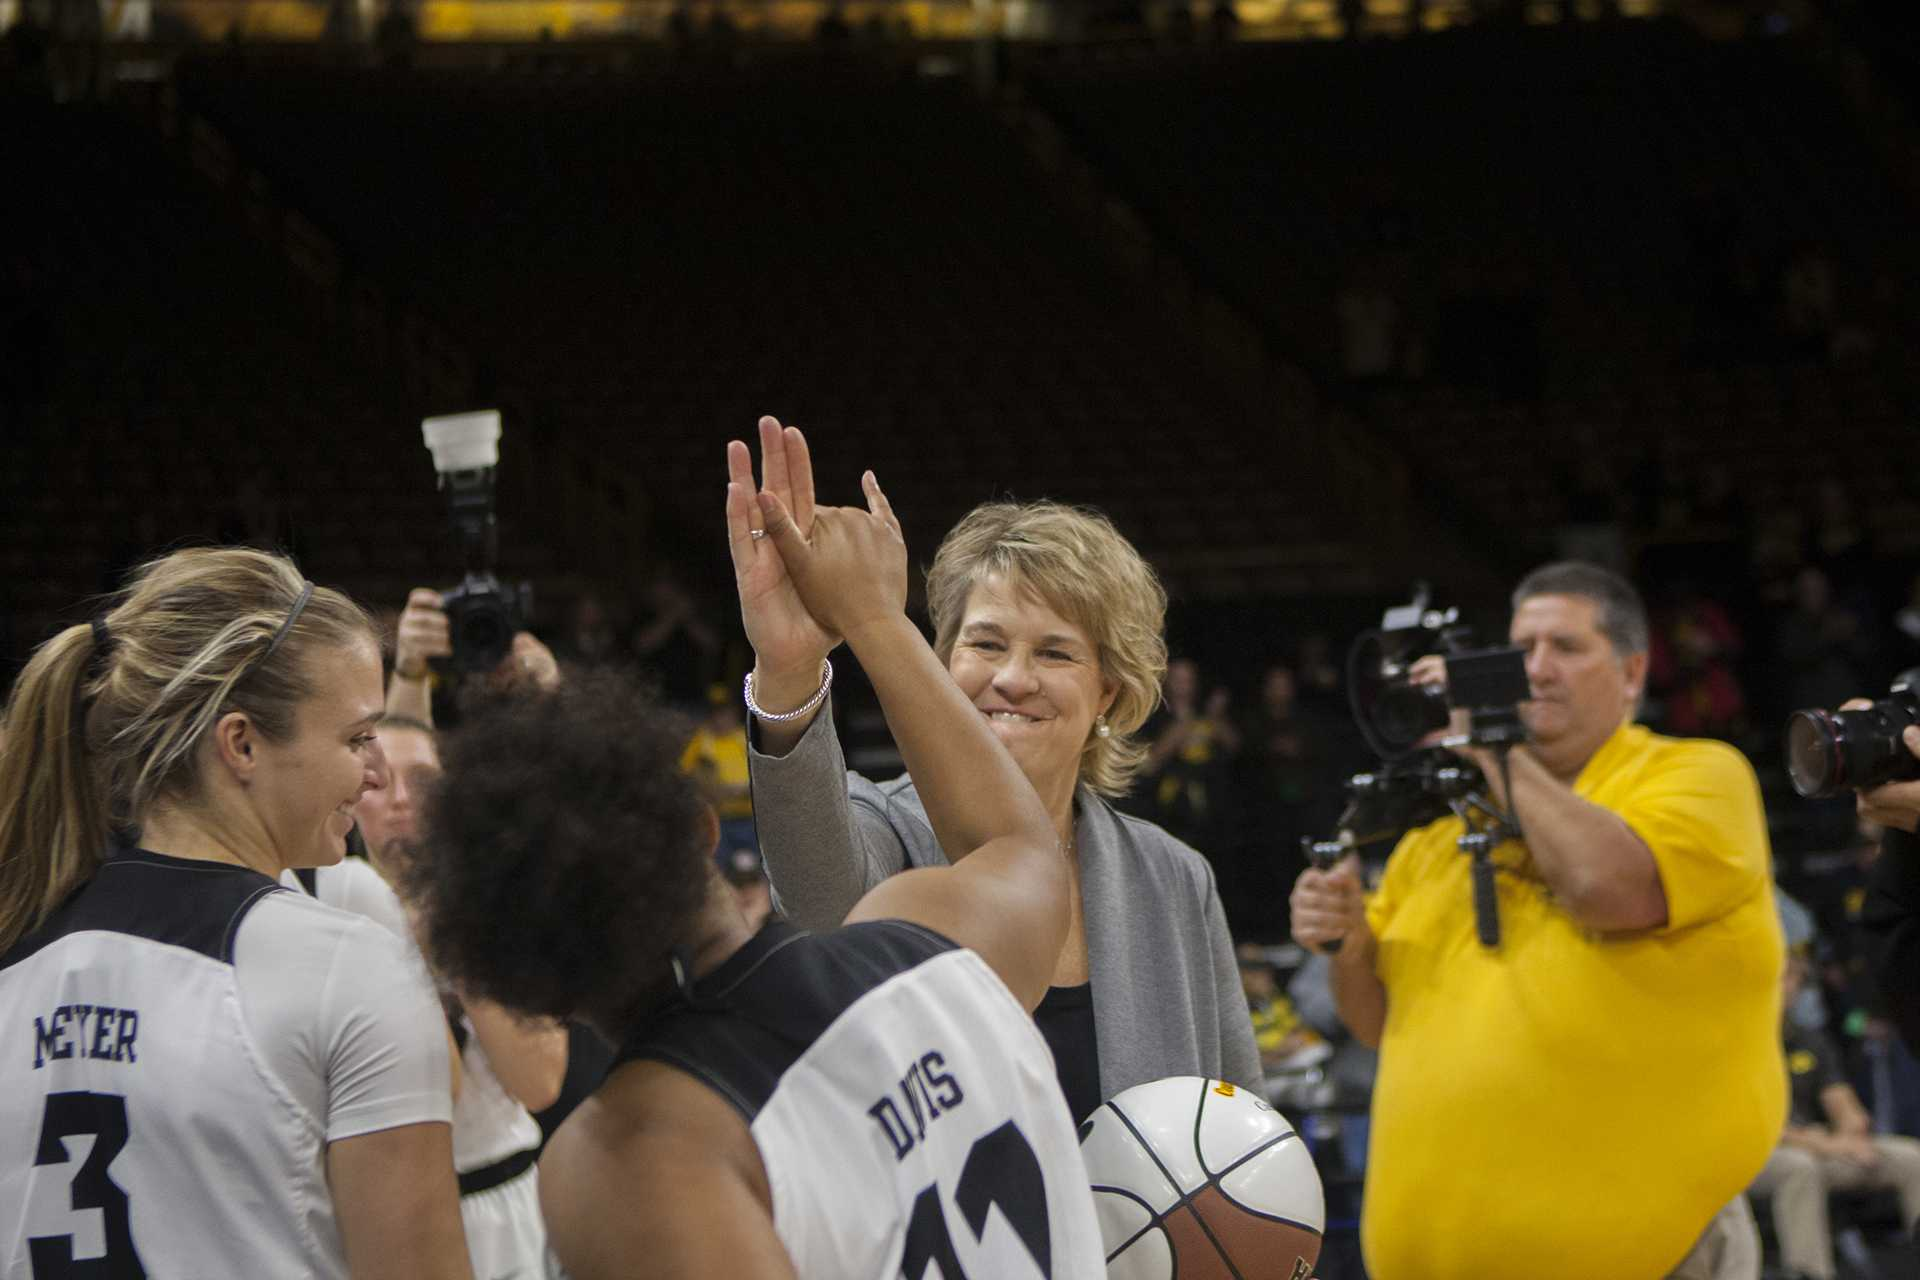 Iowa head coach Lisa Bluder high fives guard Tania Davis during the Iowa/Quinnipiac basketball game at Carver-Hawkeye Arena on Friday, Nov. 10, 2017. The Hawkeyes defeated the Bobcats, 83-67, for head coach Lisa Bluder's 700 career win. (Lily Smith/The Daily Iowan)